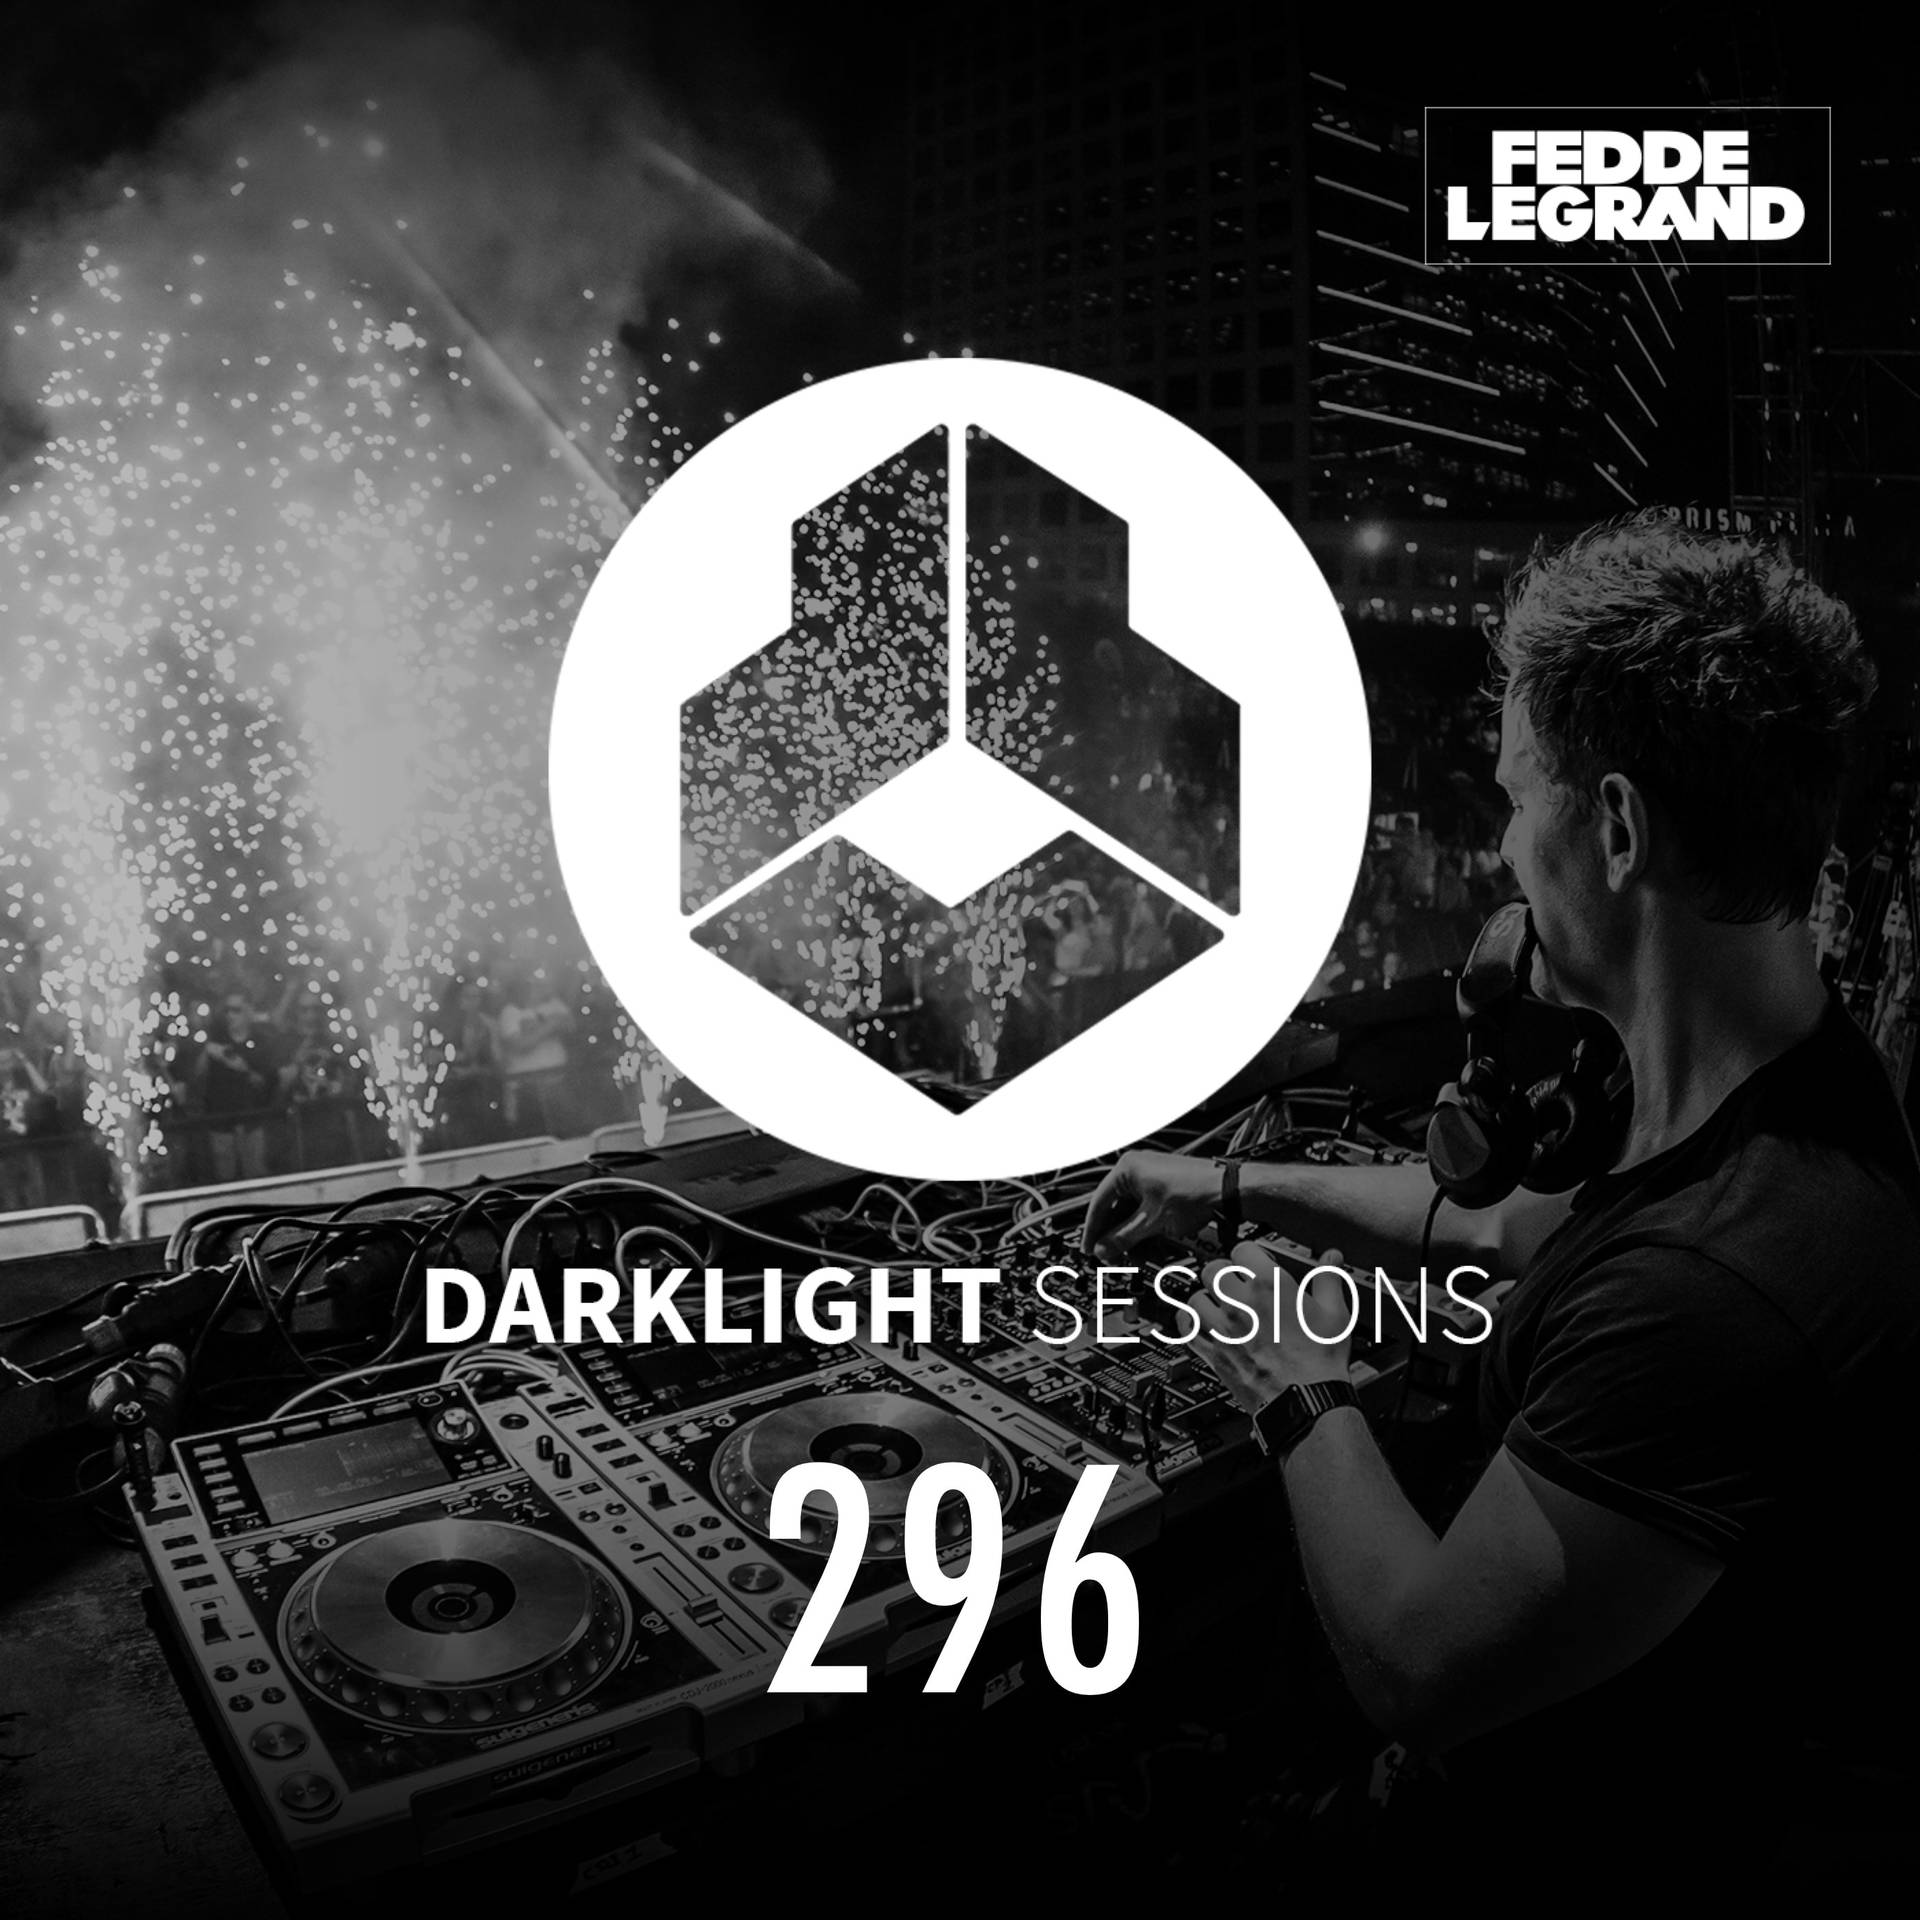 Darklight Sessions 296